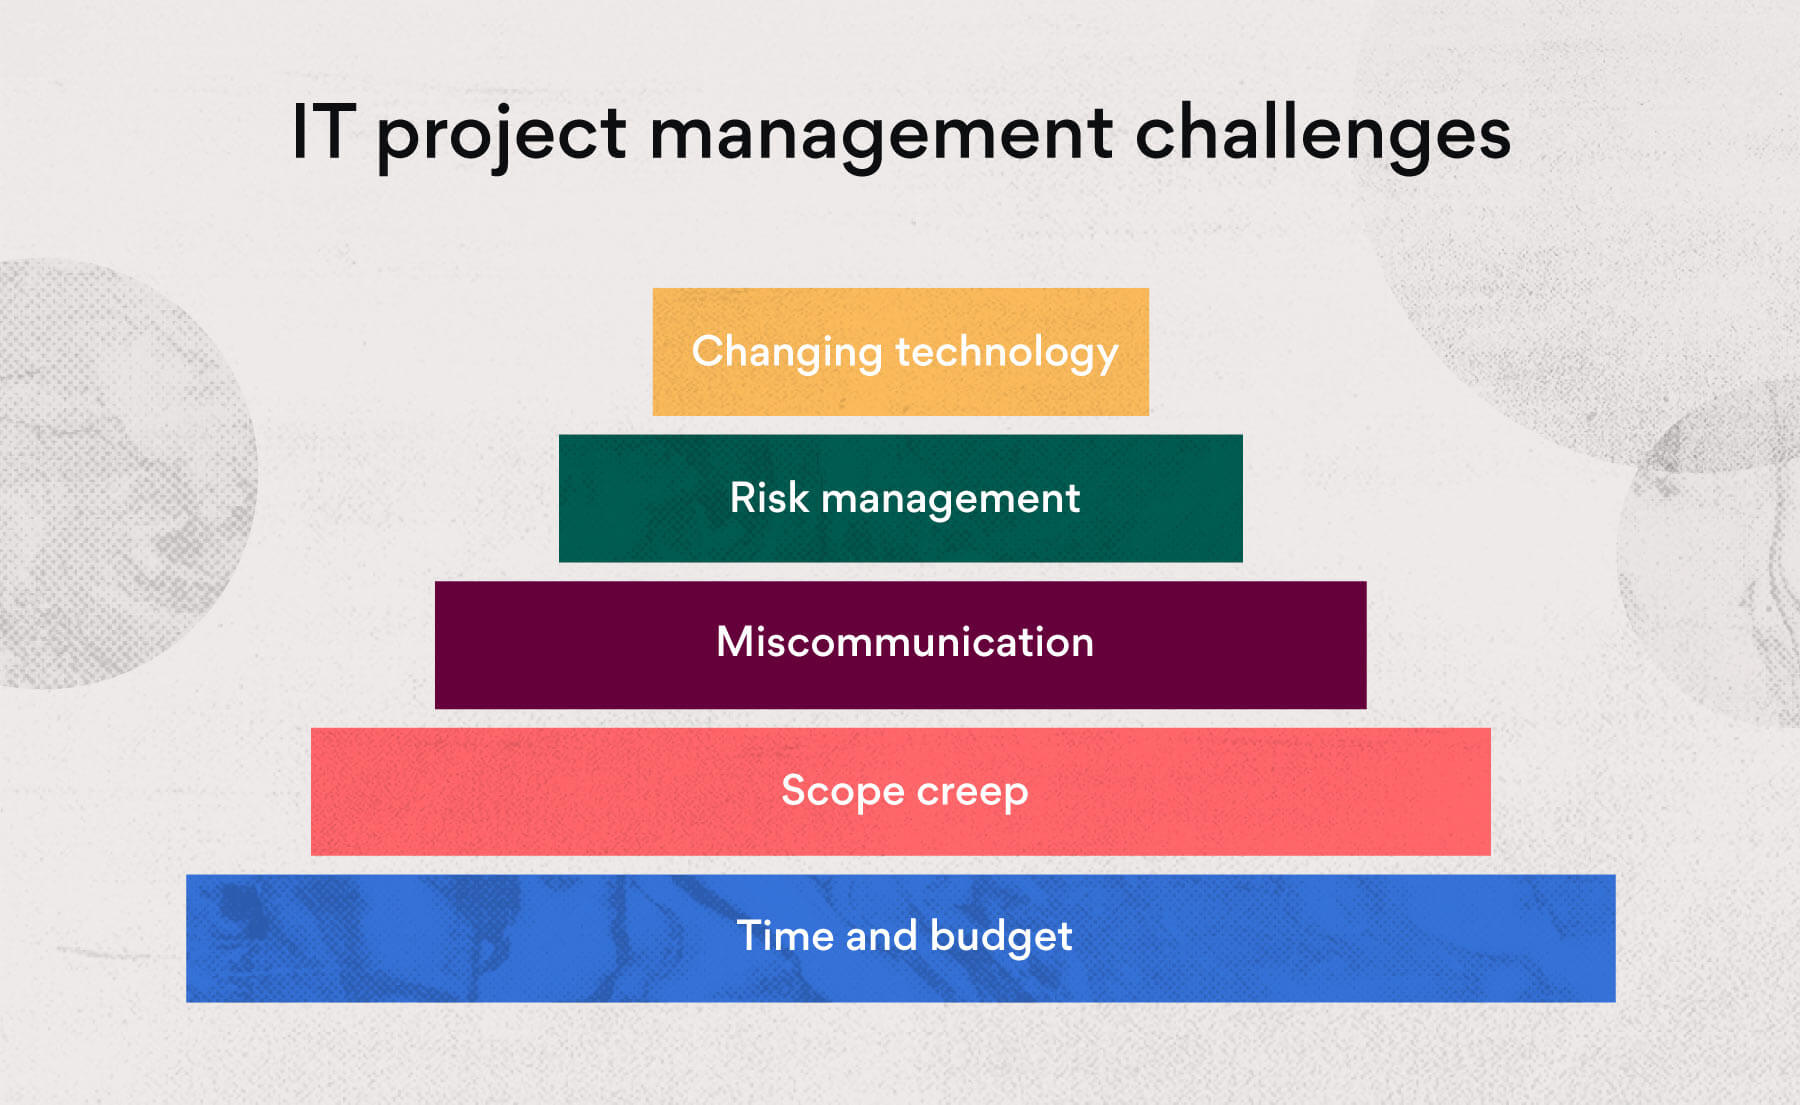 Challenges faced by IT project managers